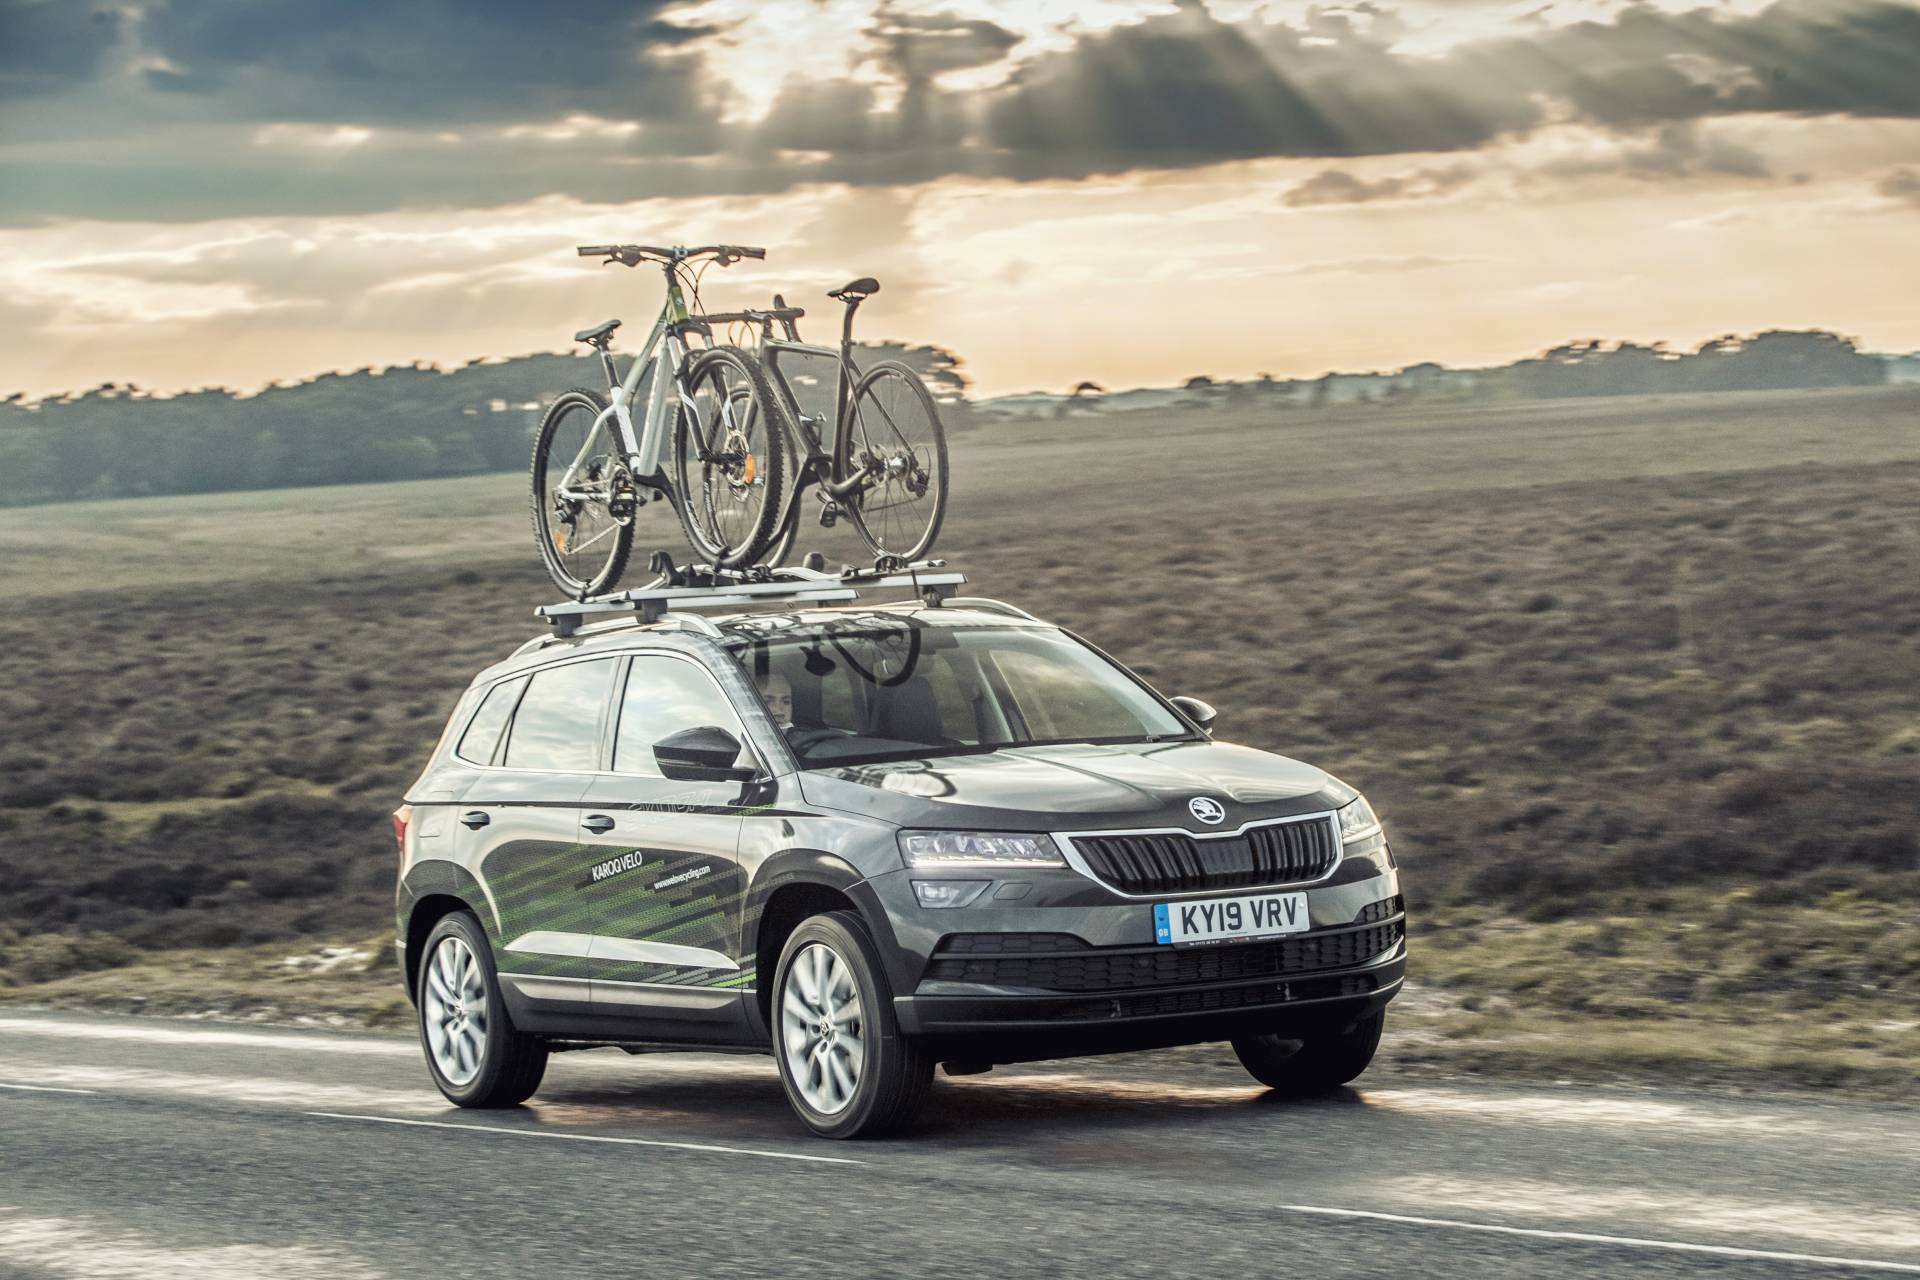 Skoda-Karoq-Velo-one-off-2